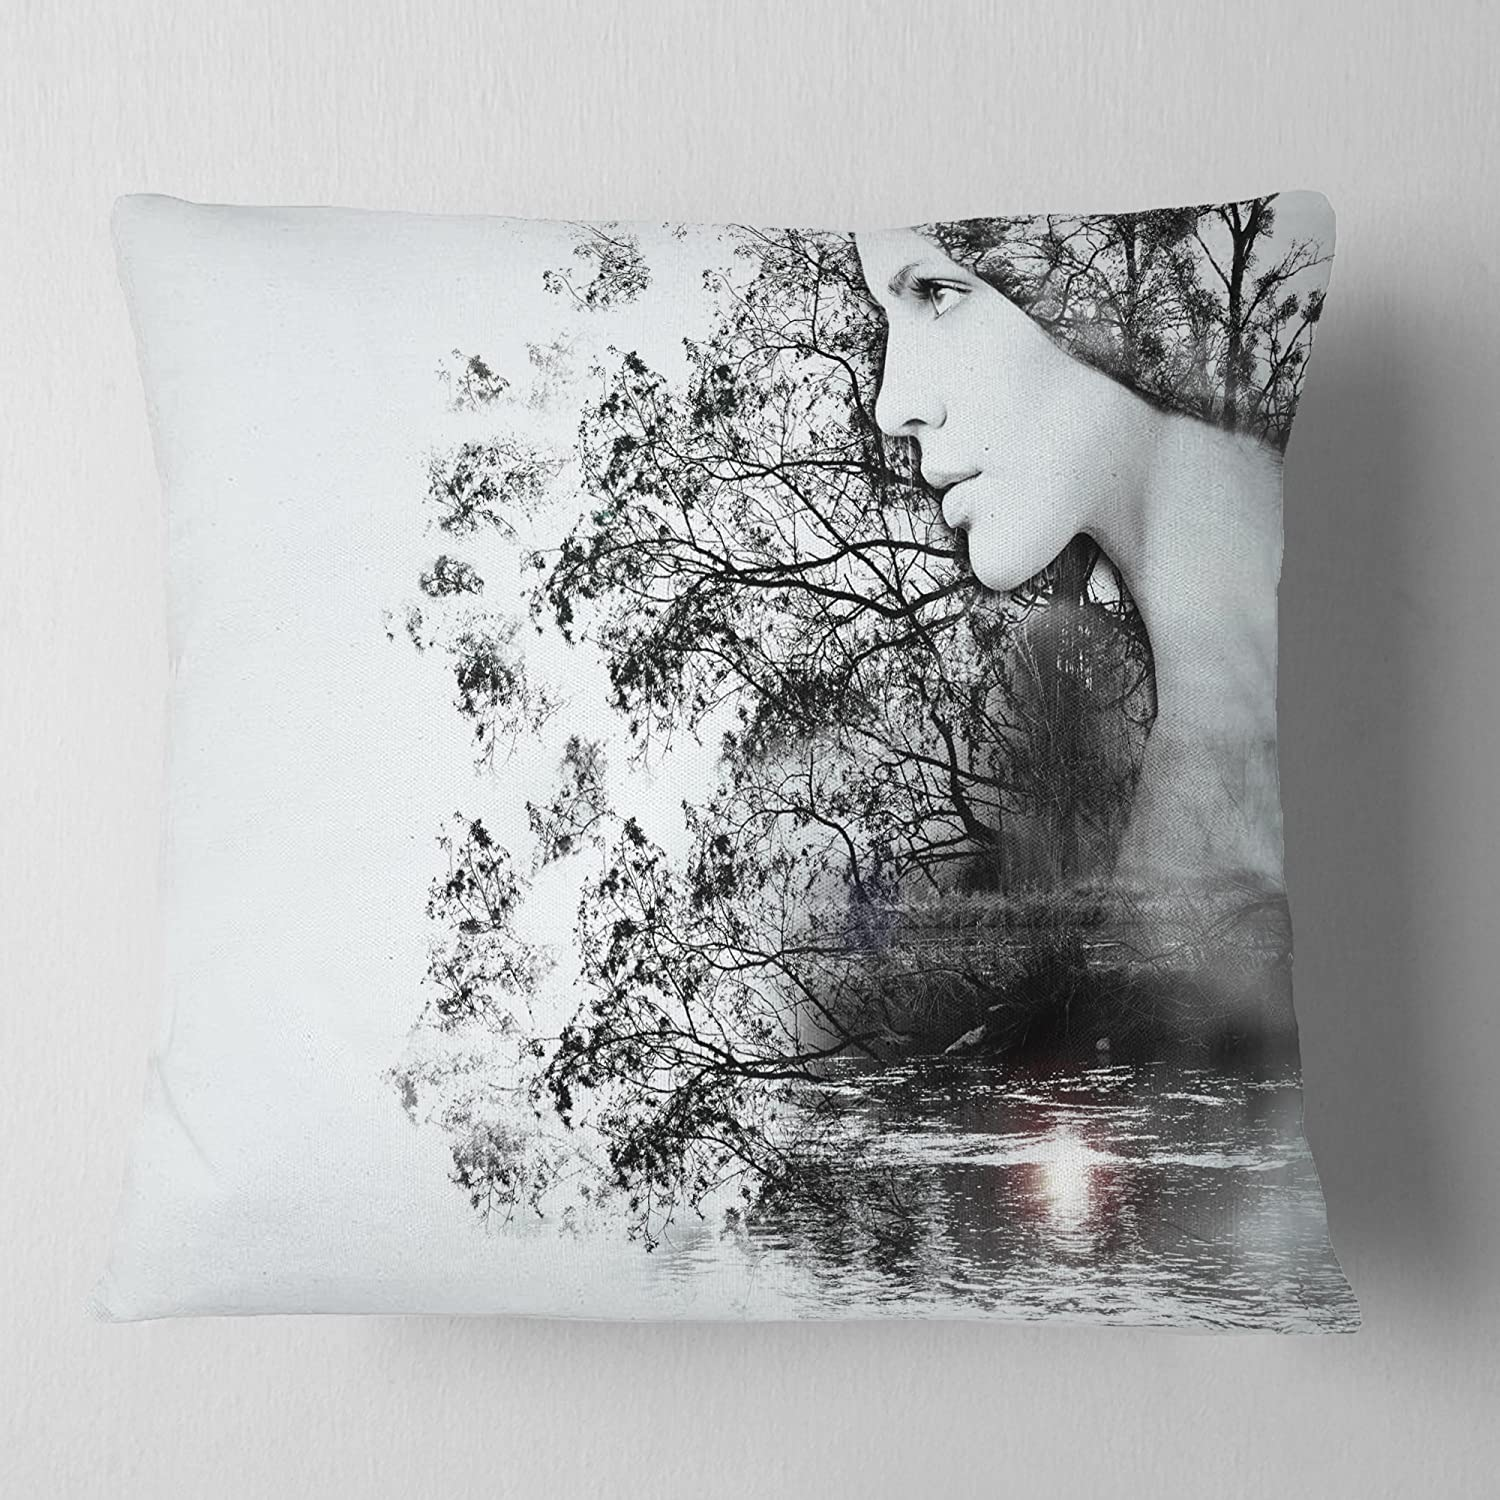 Designart CU14316-16-16 Woman and Beauty of Nature' Landscape Printed Cushion Cover for Living Room, Sofa Throw Pillow 16 in. x 16 in. in, Insert Side